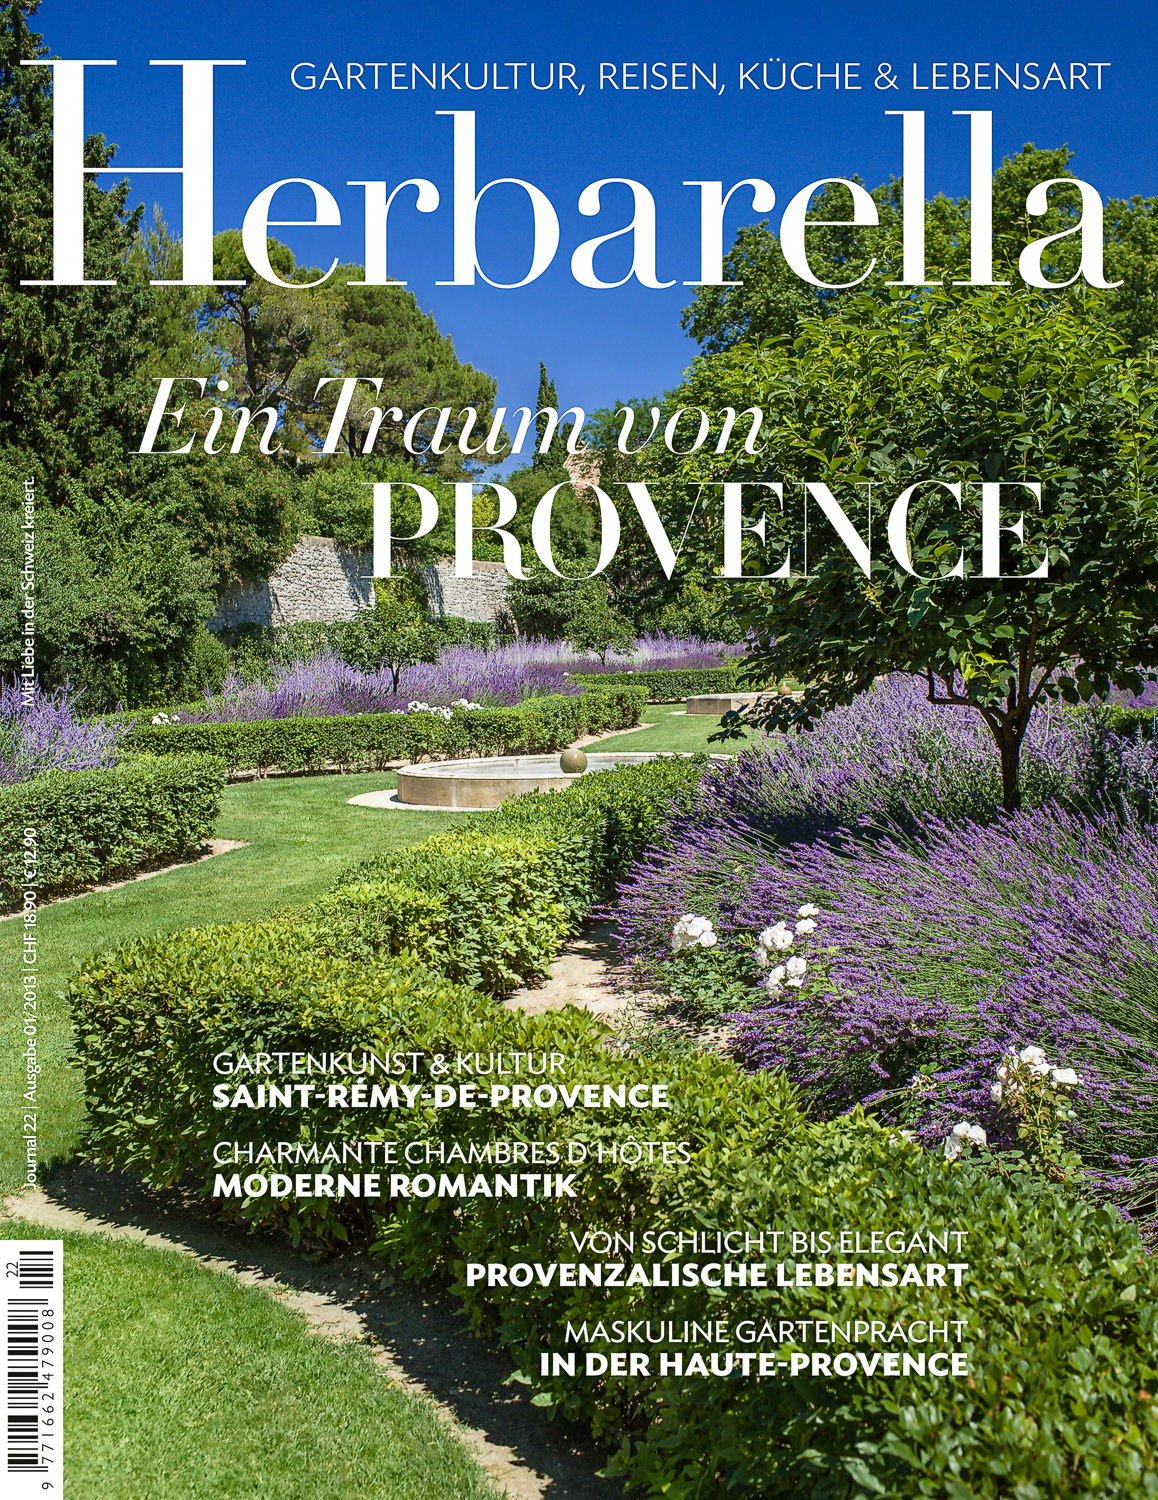 journal 22 ein traum von provence herbarella. Black Bedroom Furniture Sets. Home Design Ideas